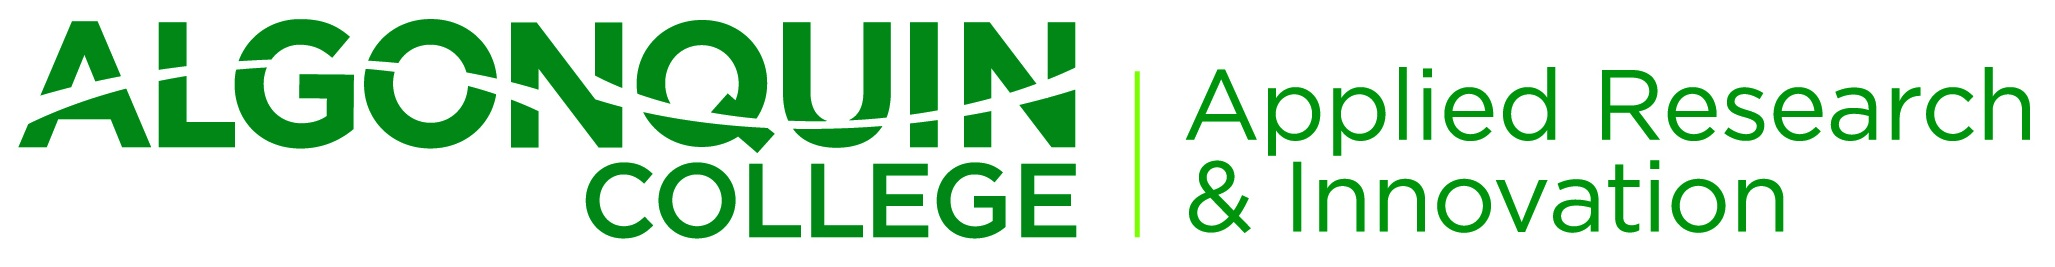 Office of Applied Research Algonquin College Logo